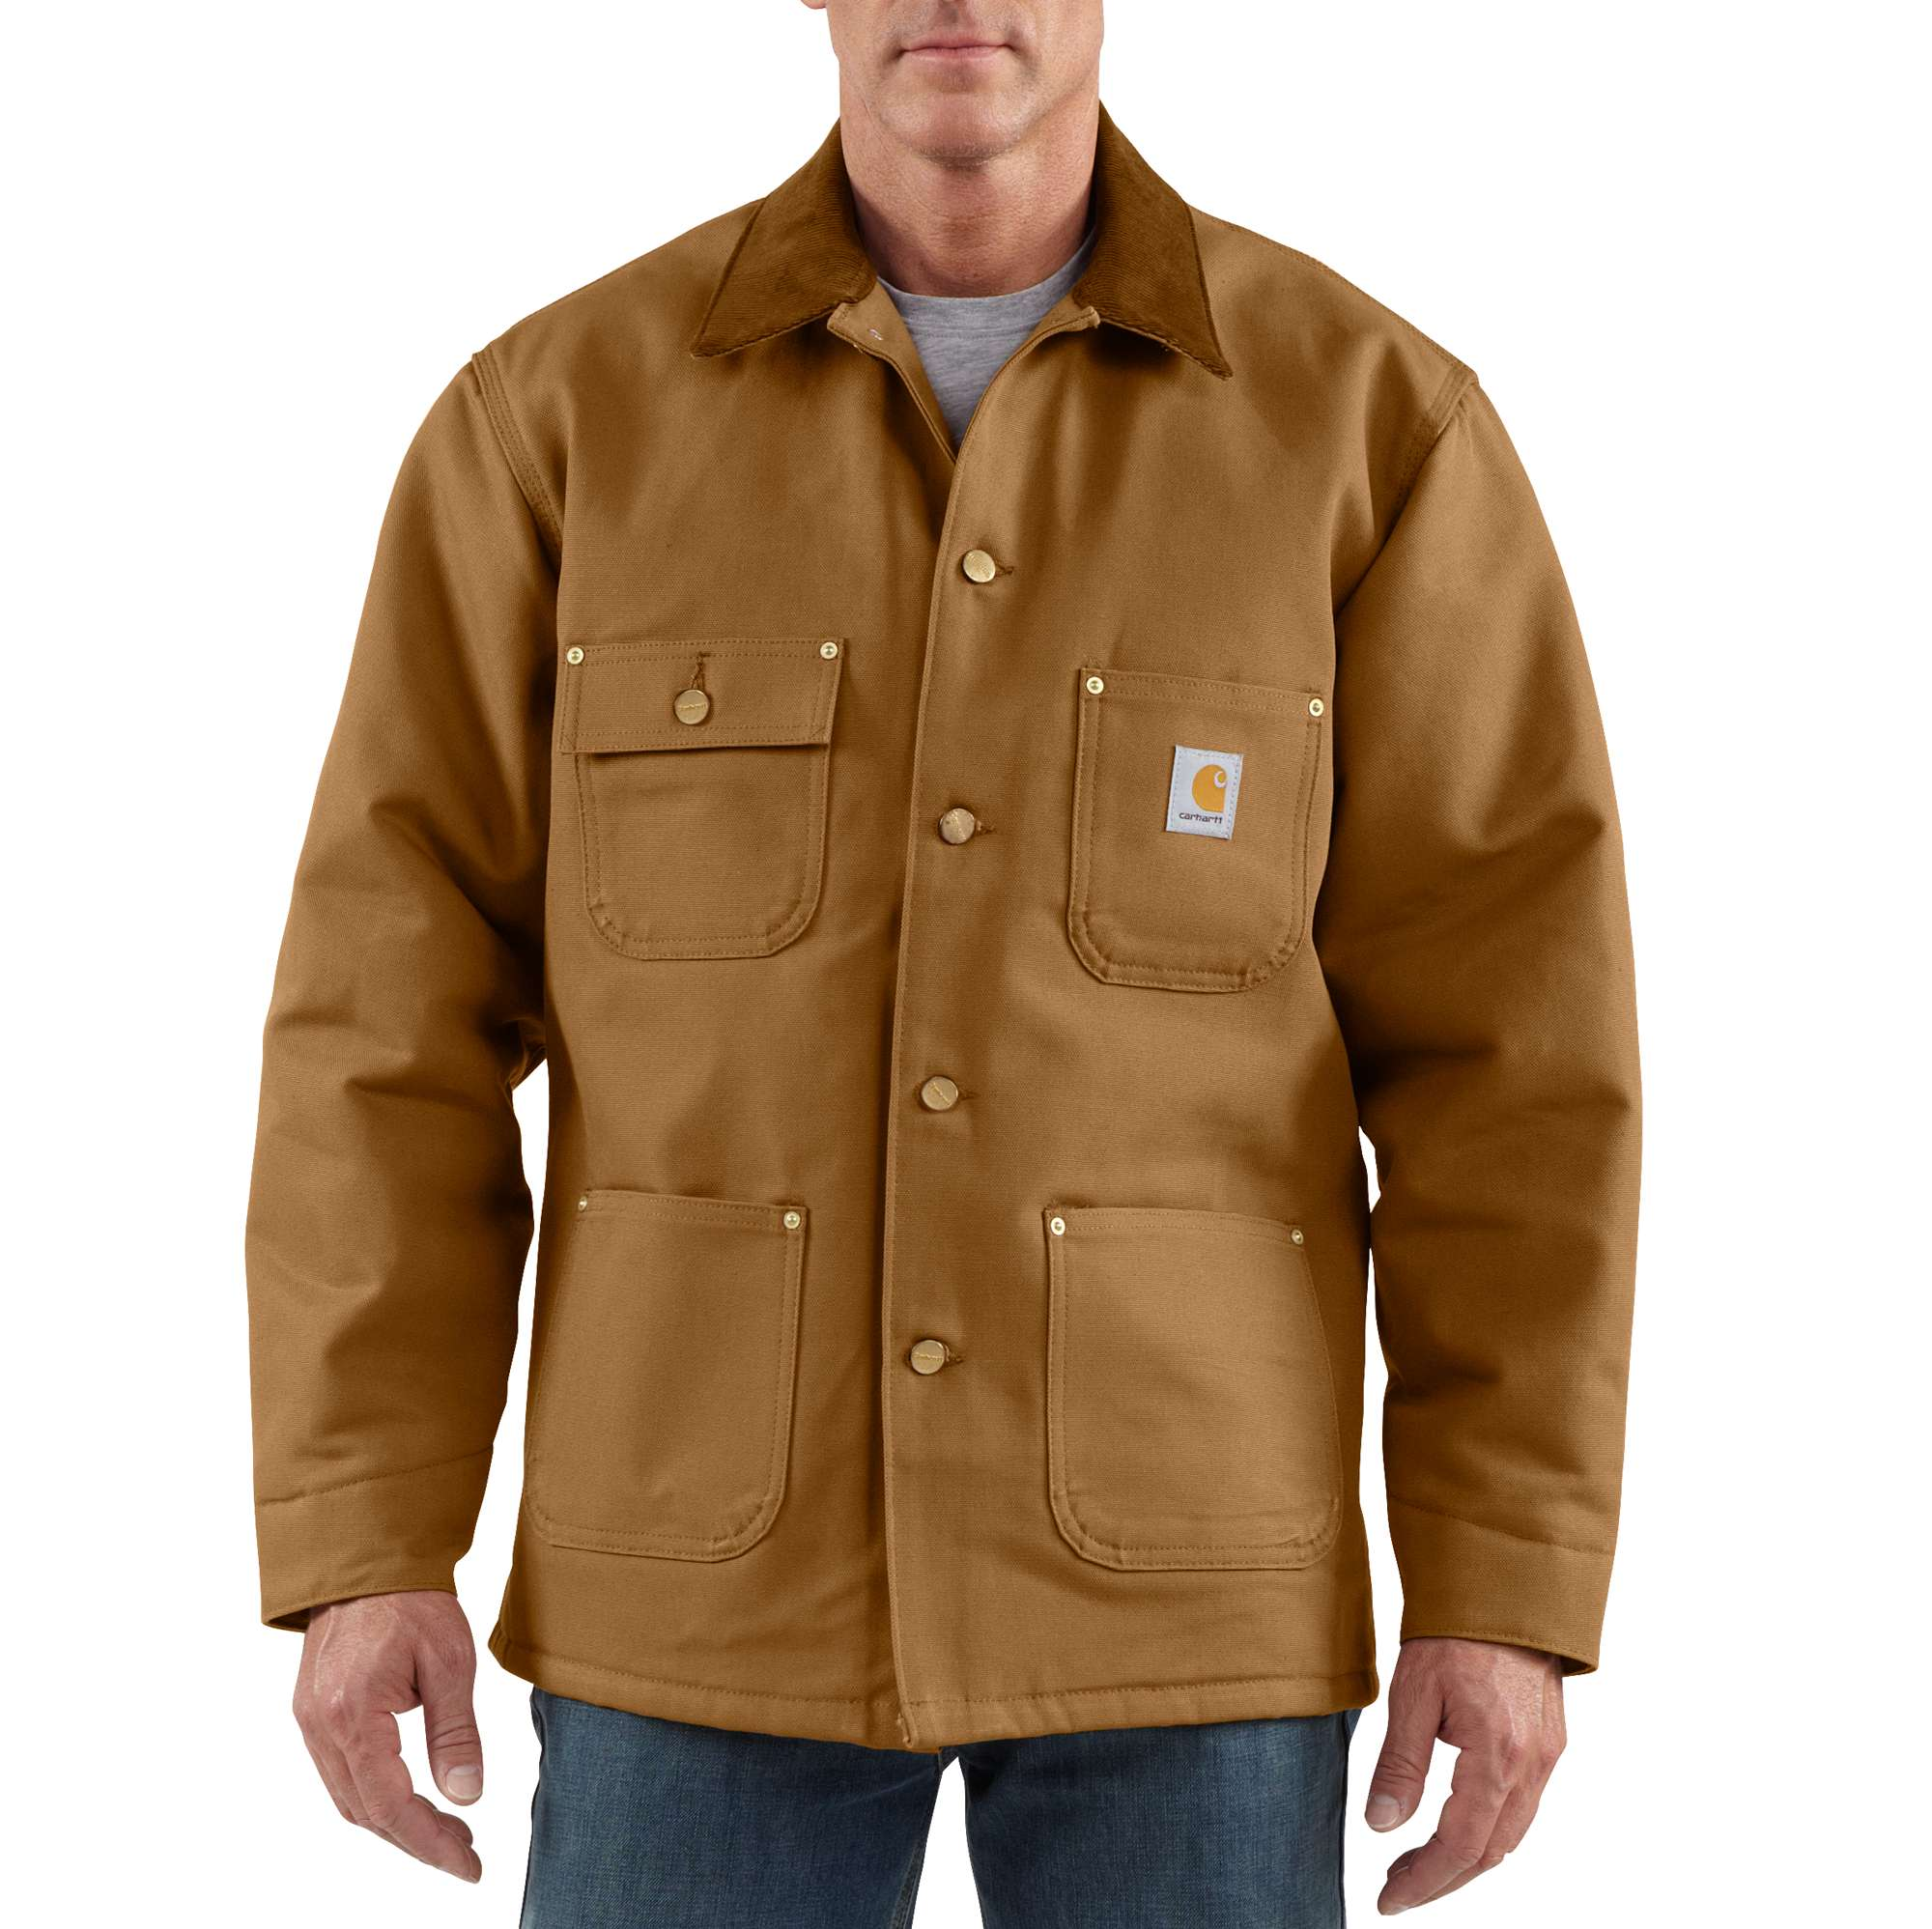 05aca4ef2d Men's Duck Blanket-Lined Chore Coat C001 | Carhartt